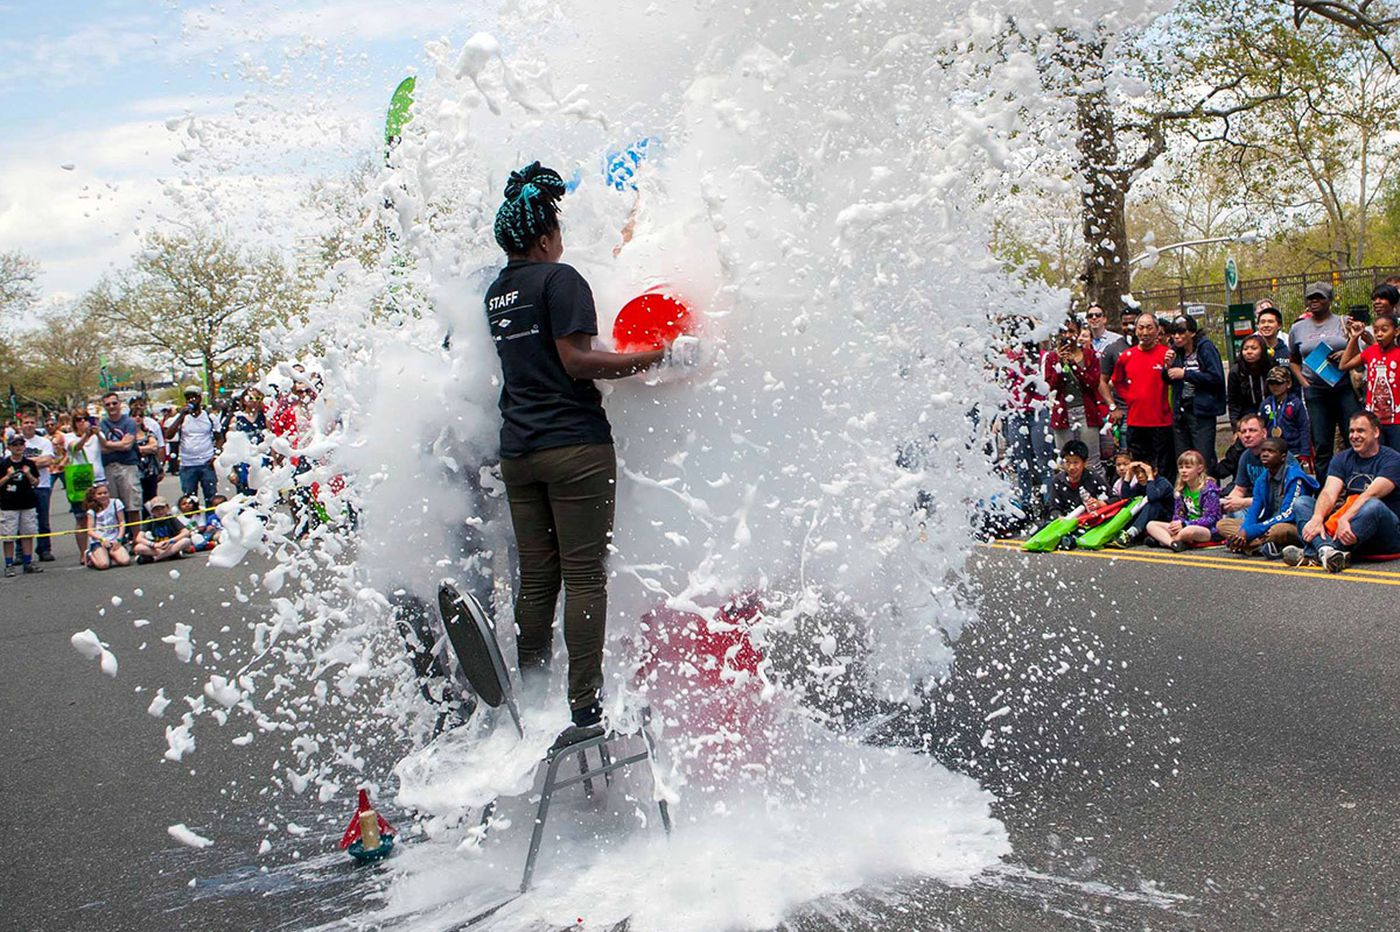 Kids to Do: The Philadelphia Science Fest closes with a massive outdoor carnival at Great Plaza